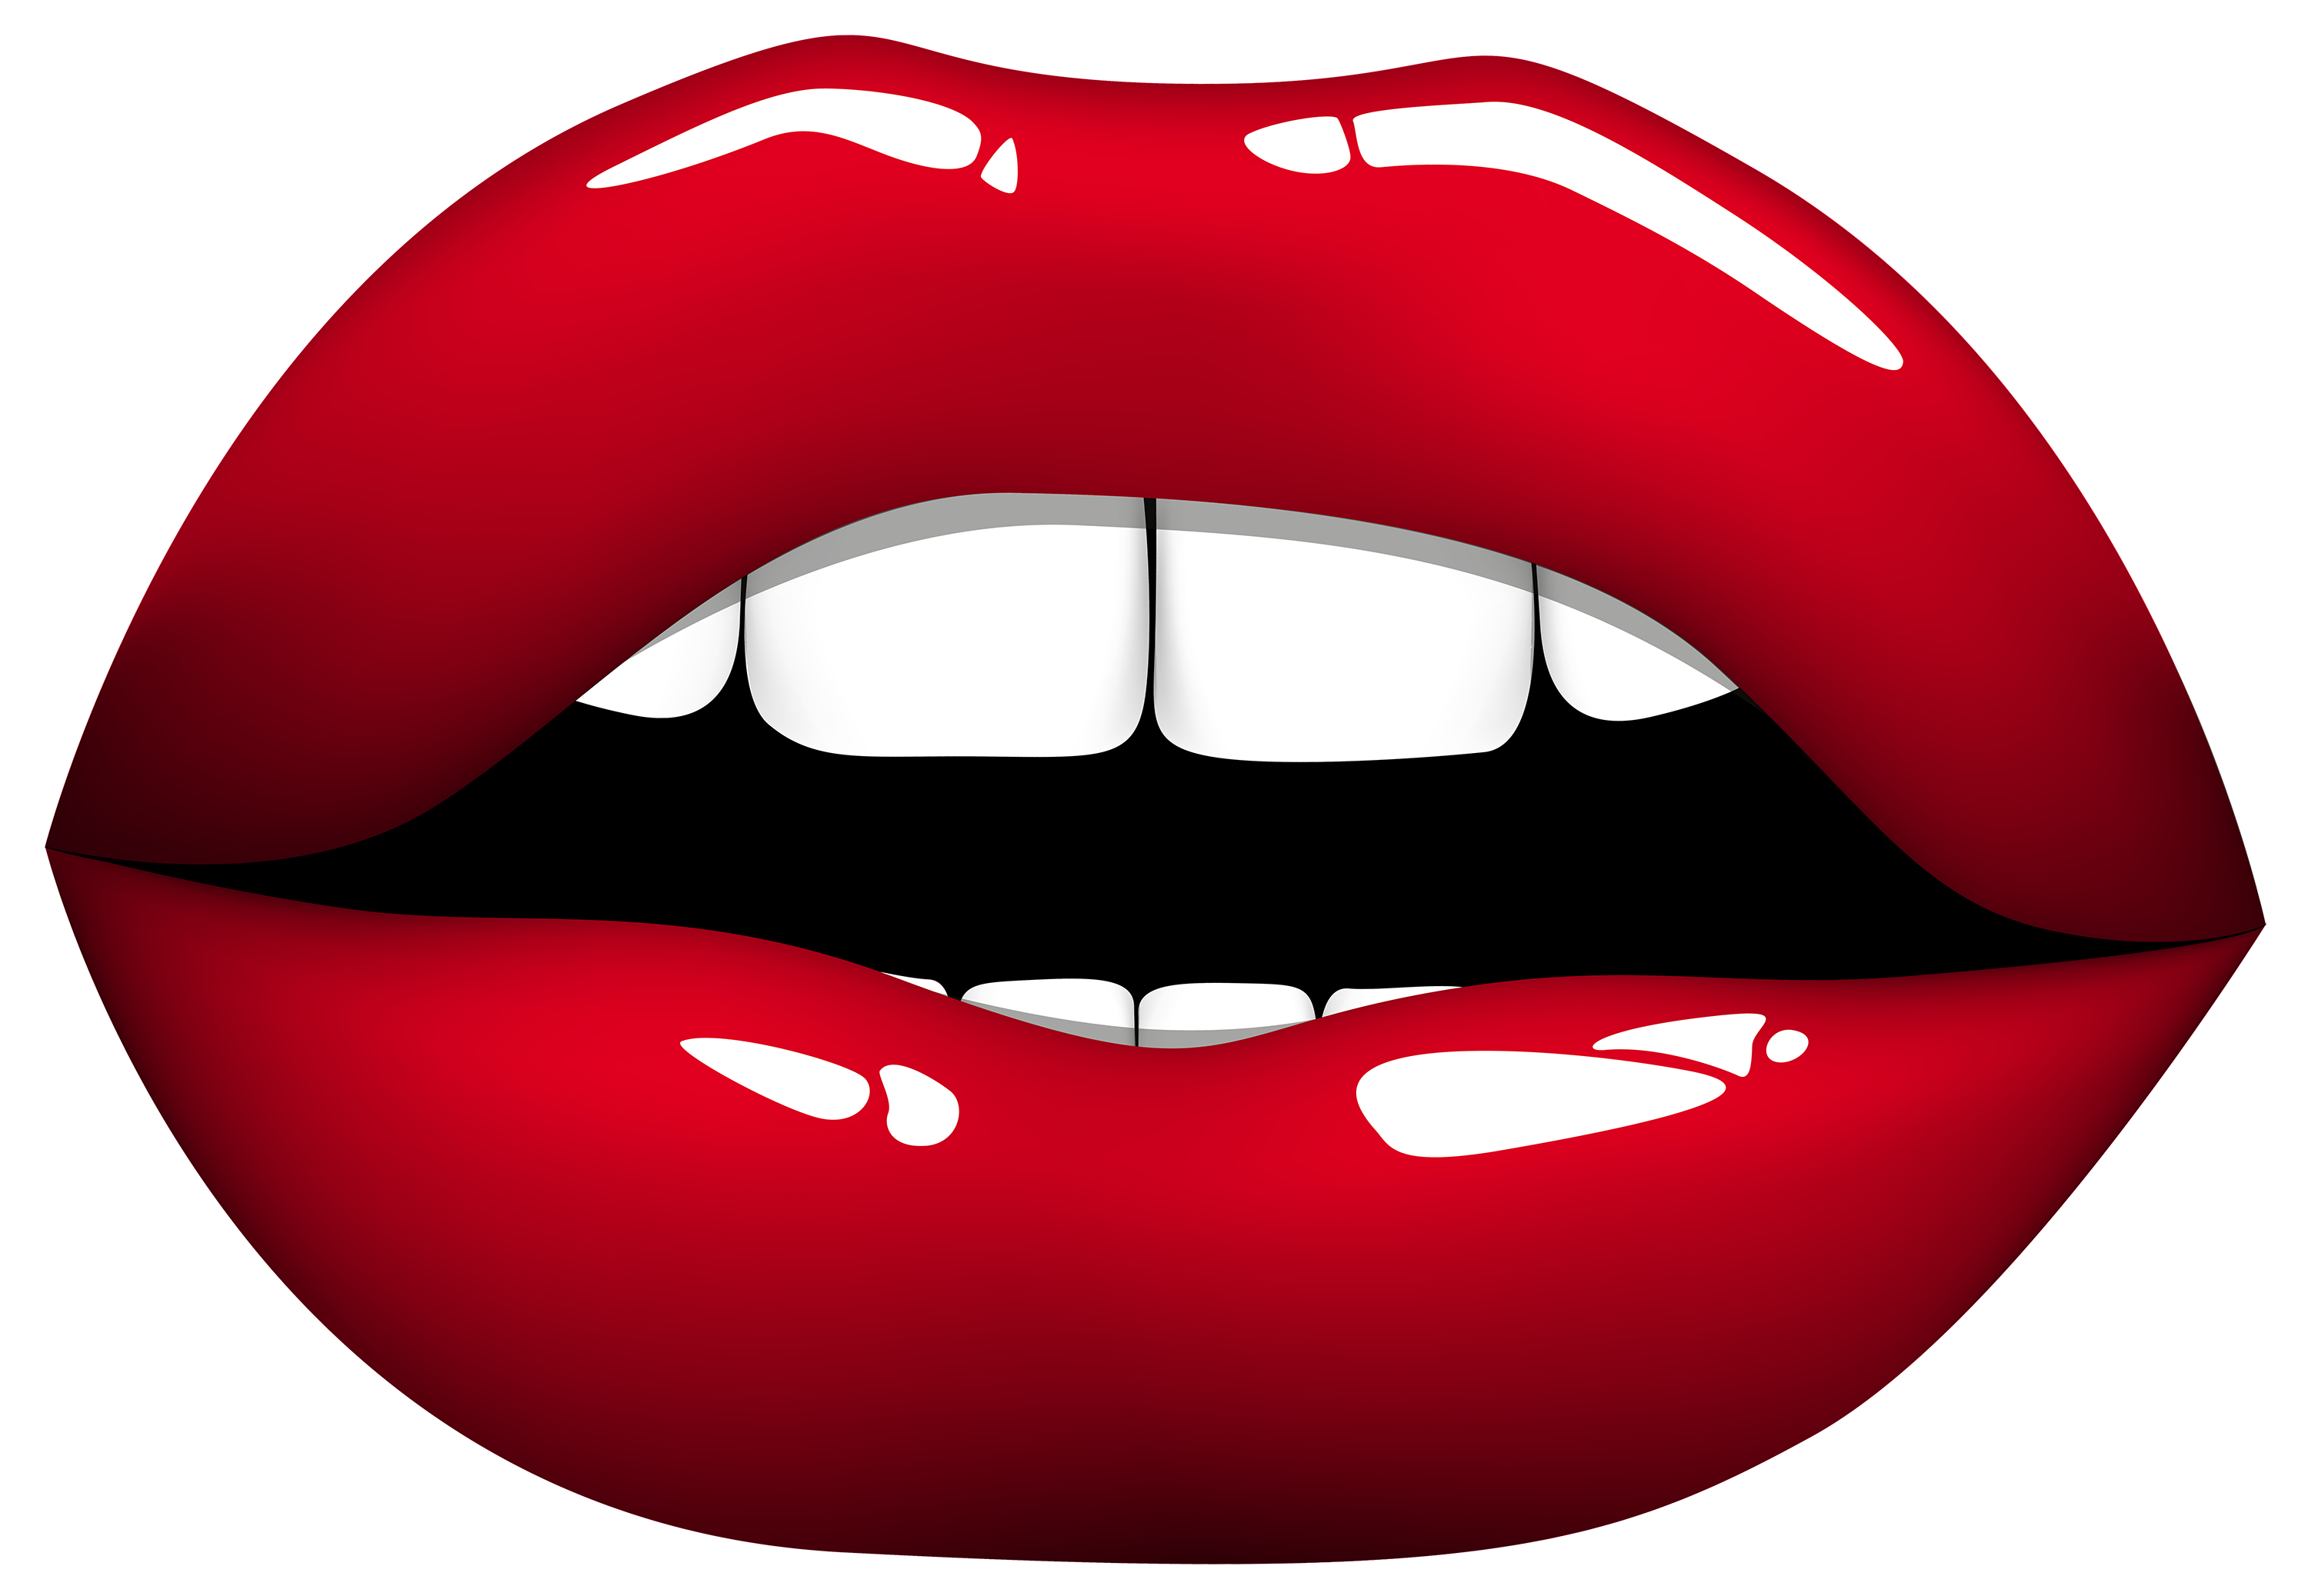 Lip clipart transparent background. Red lips png best